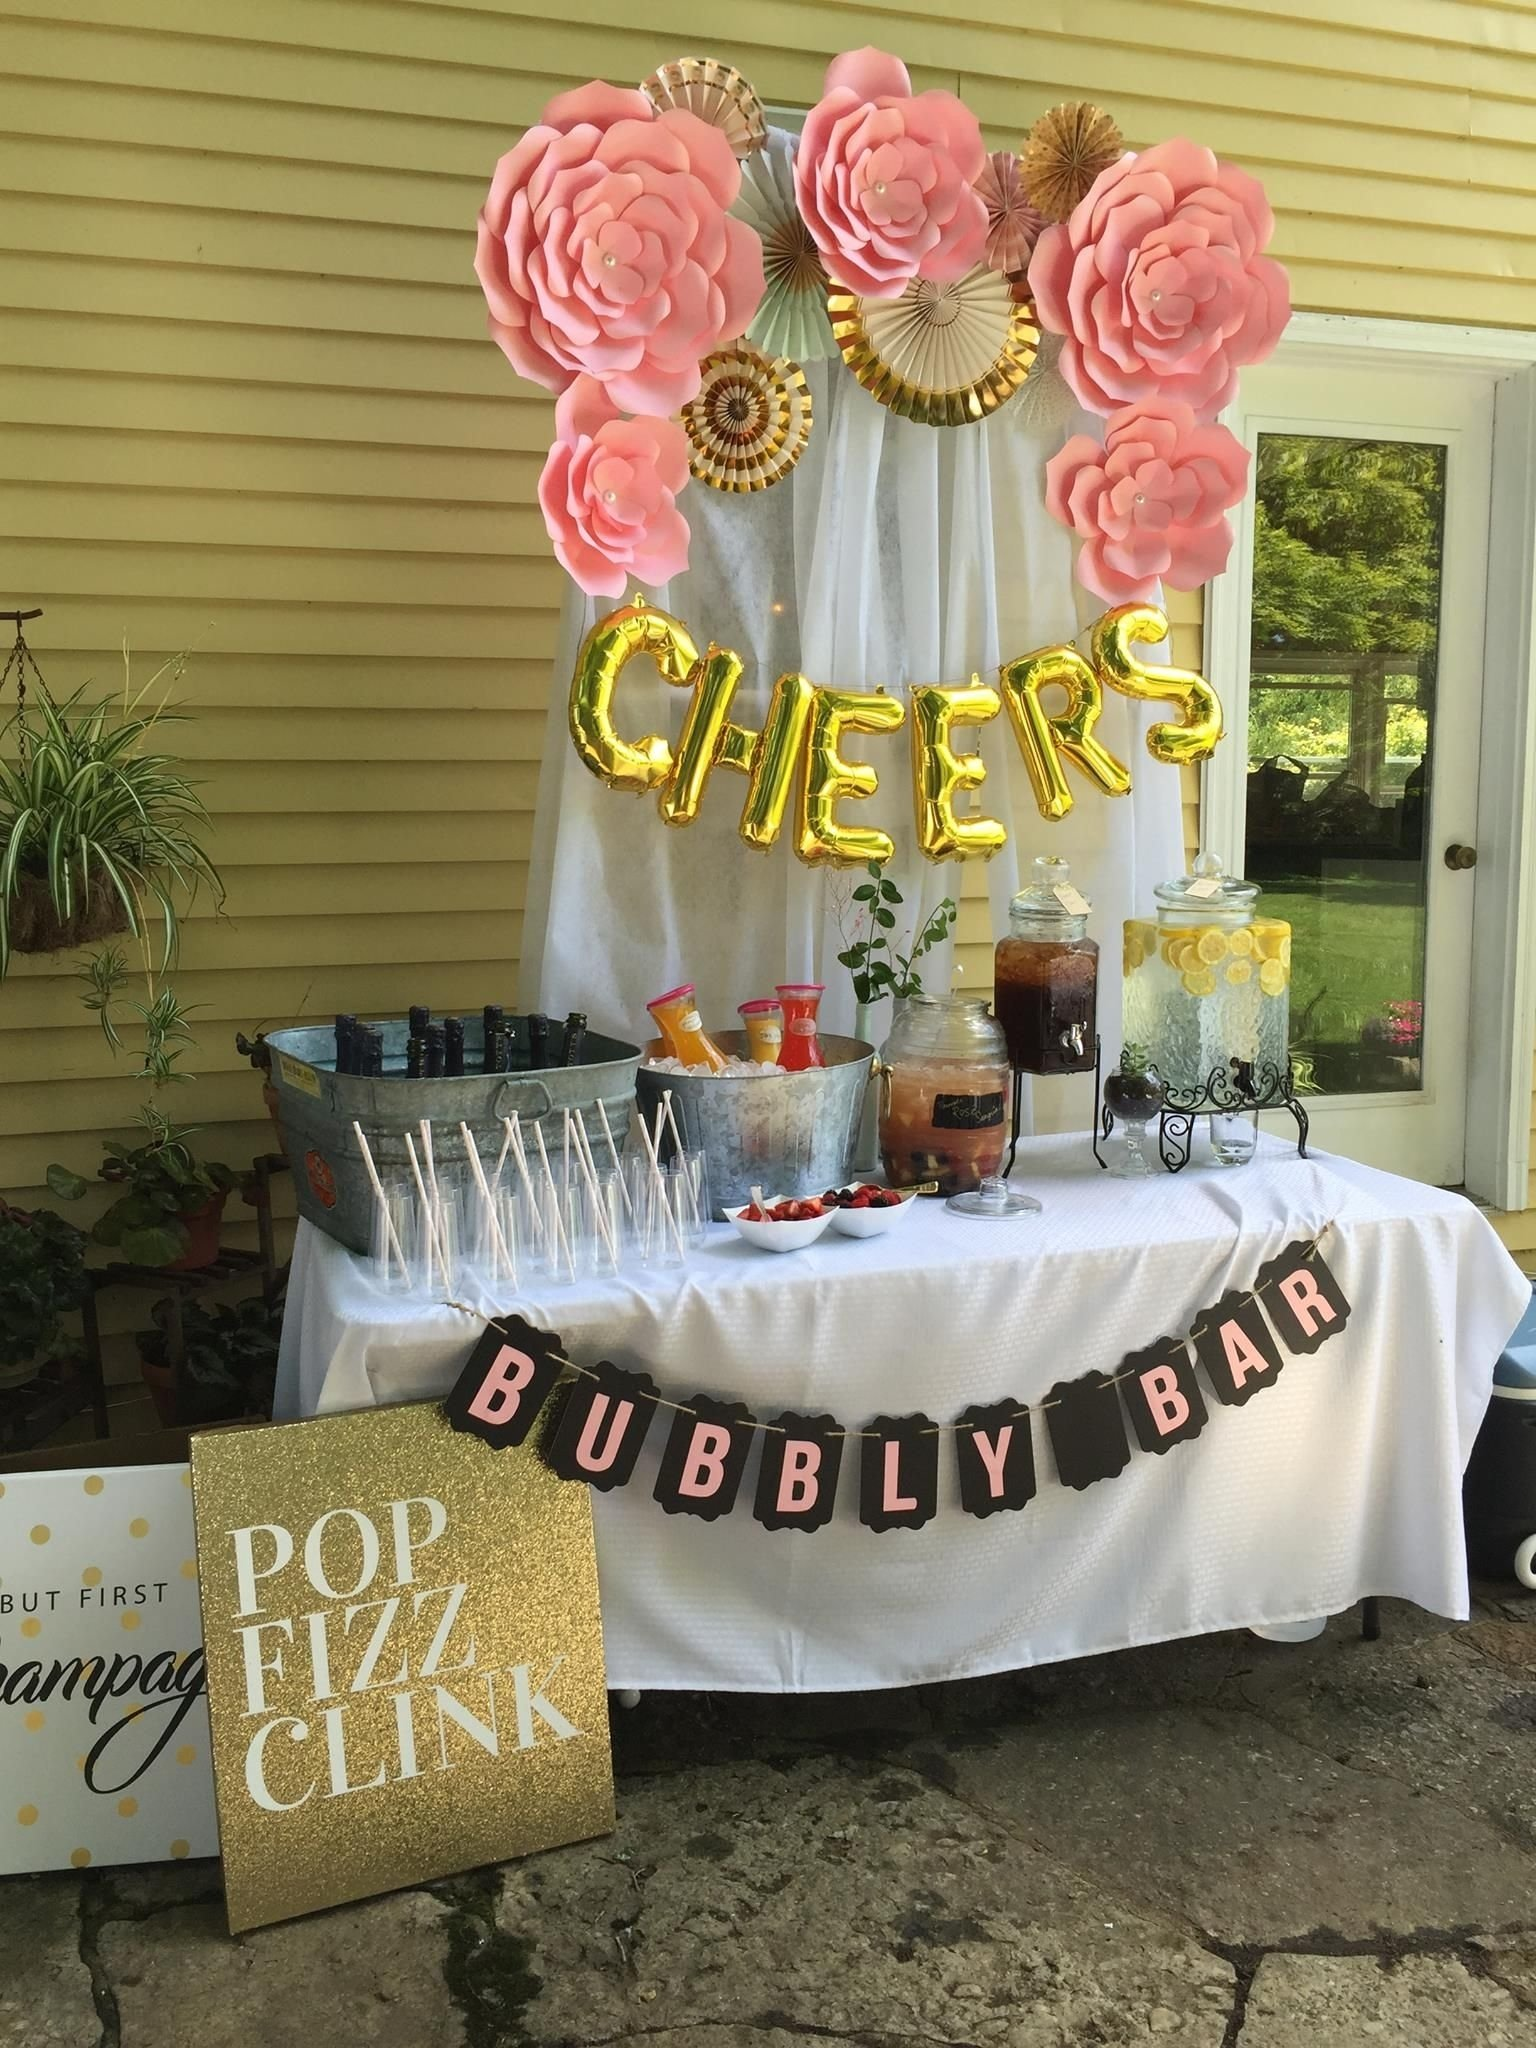 10 Most Recommended Bridal Shower Decoration Ideas Diy lees bridal shower pink and gold mimosa bar with diy paper flowers